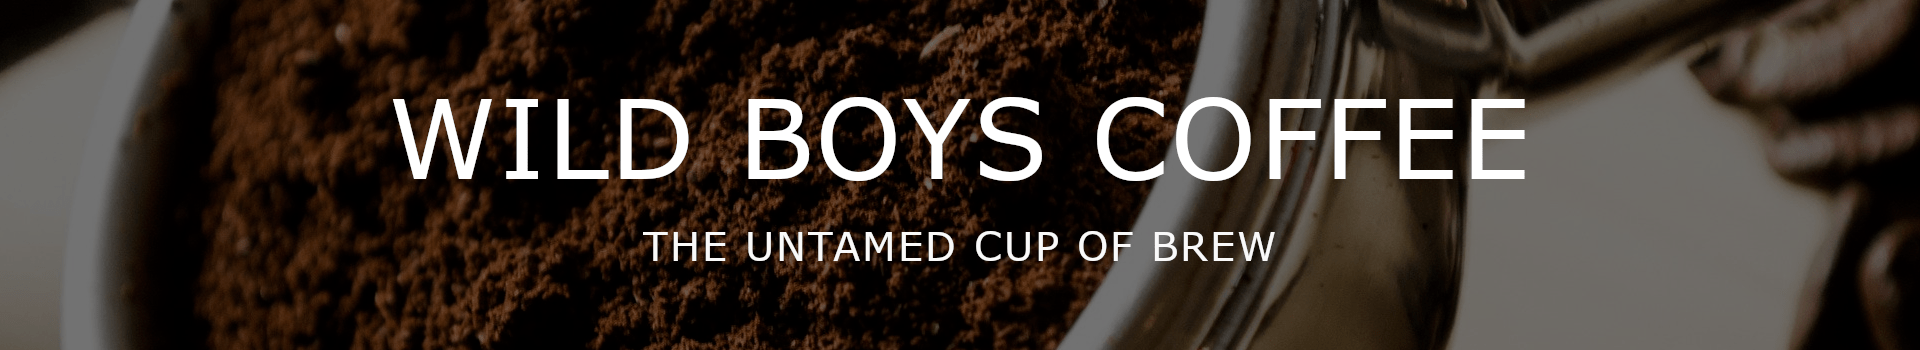 Wild Boys - Coffee